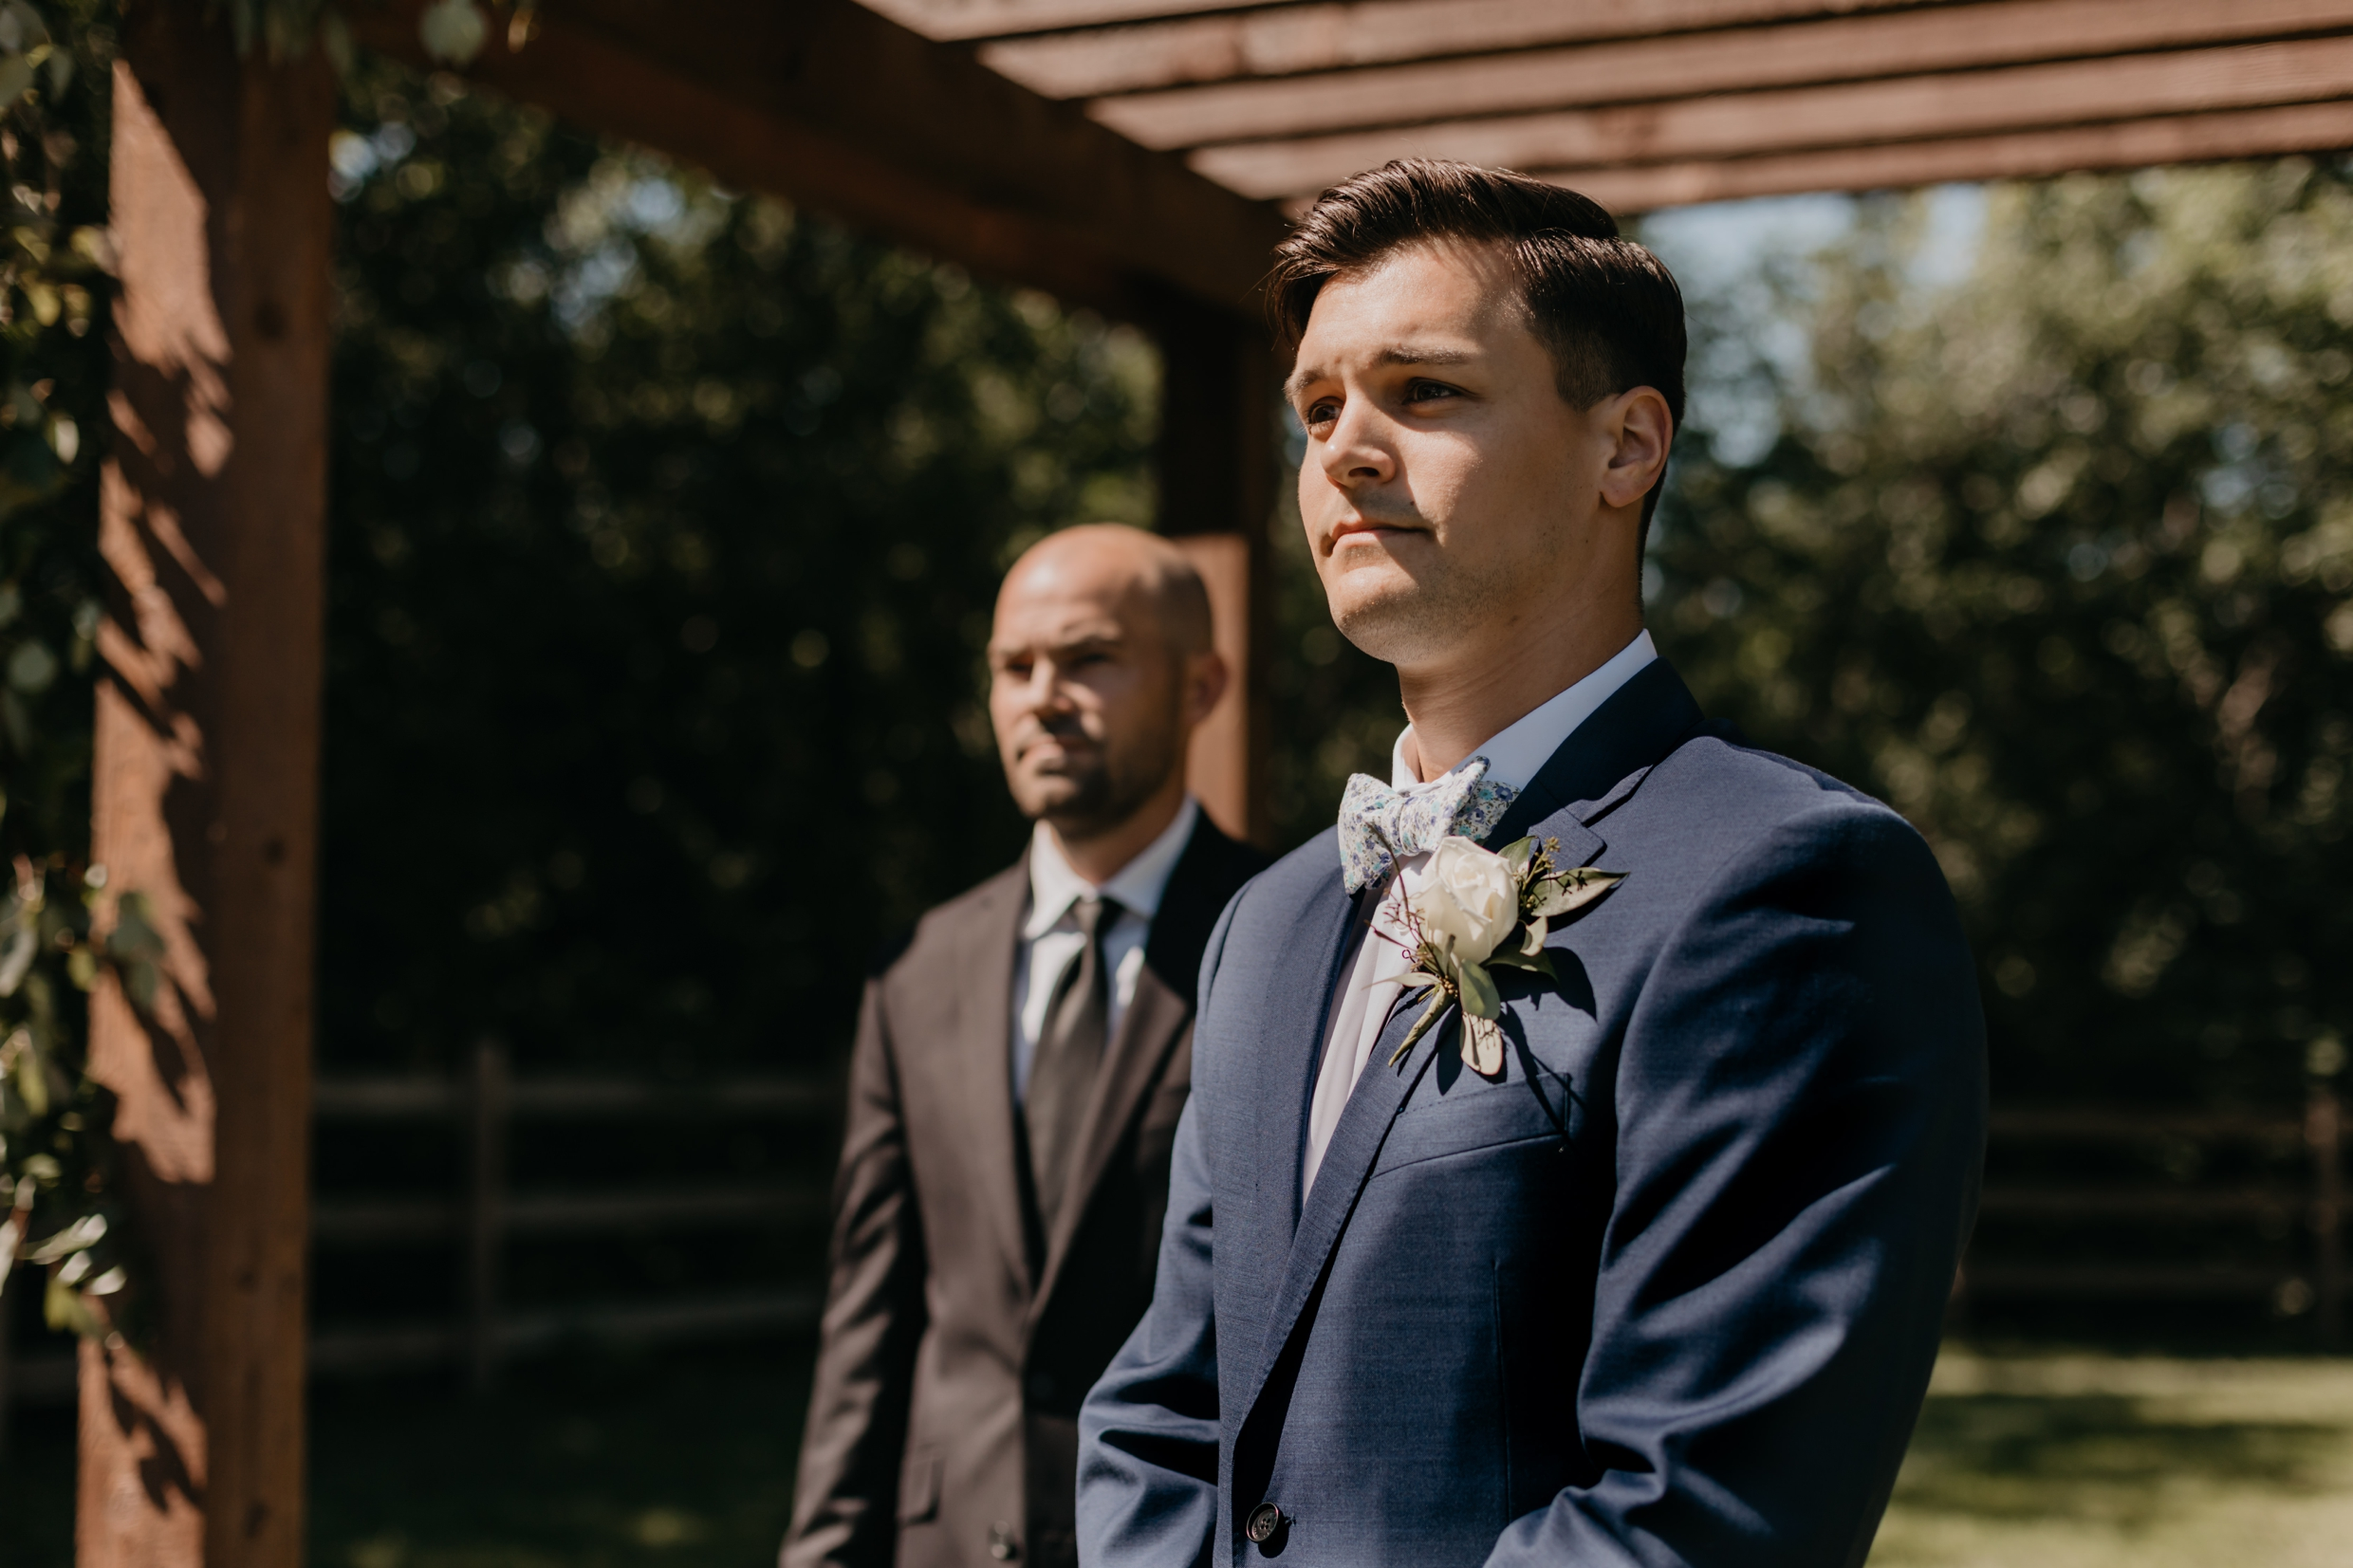 2019-01-21-natural-outdoor-wisconsin-wedding-photographer_0013.jpg